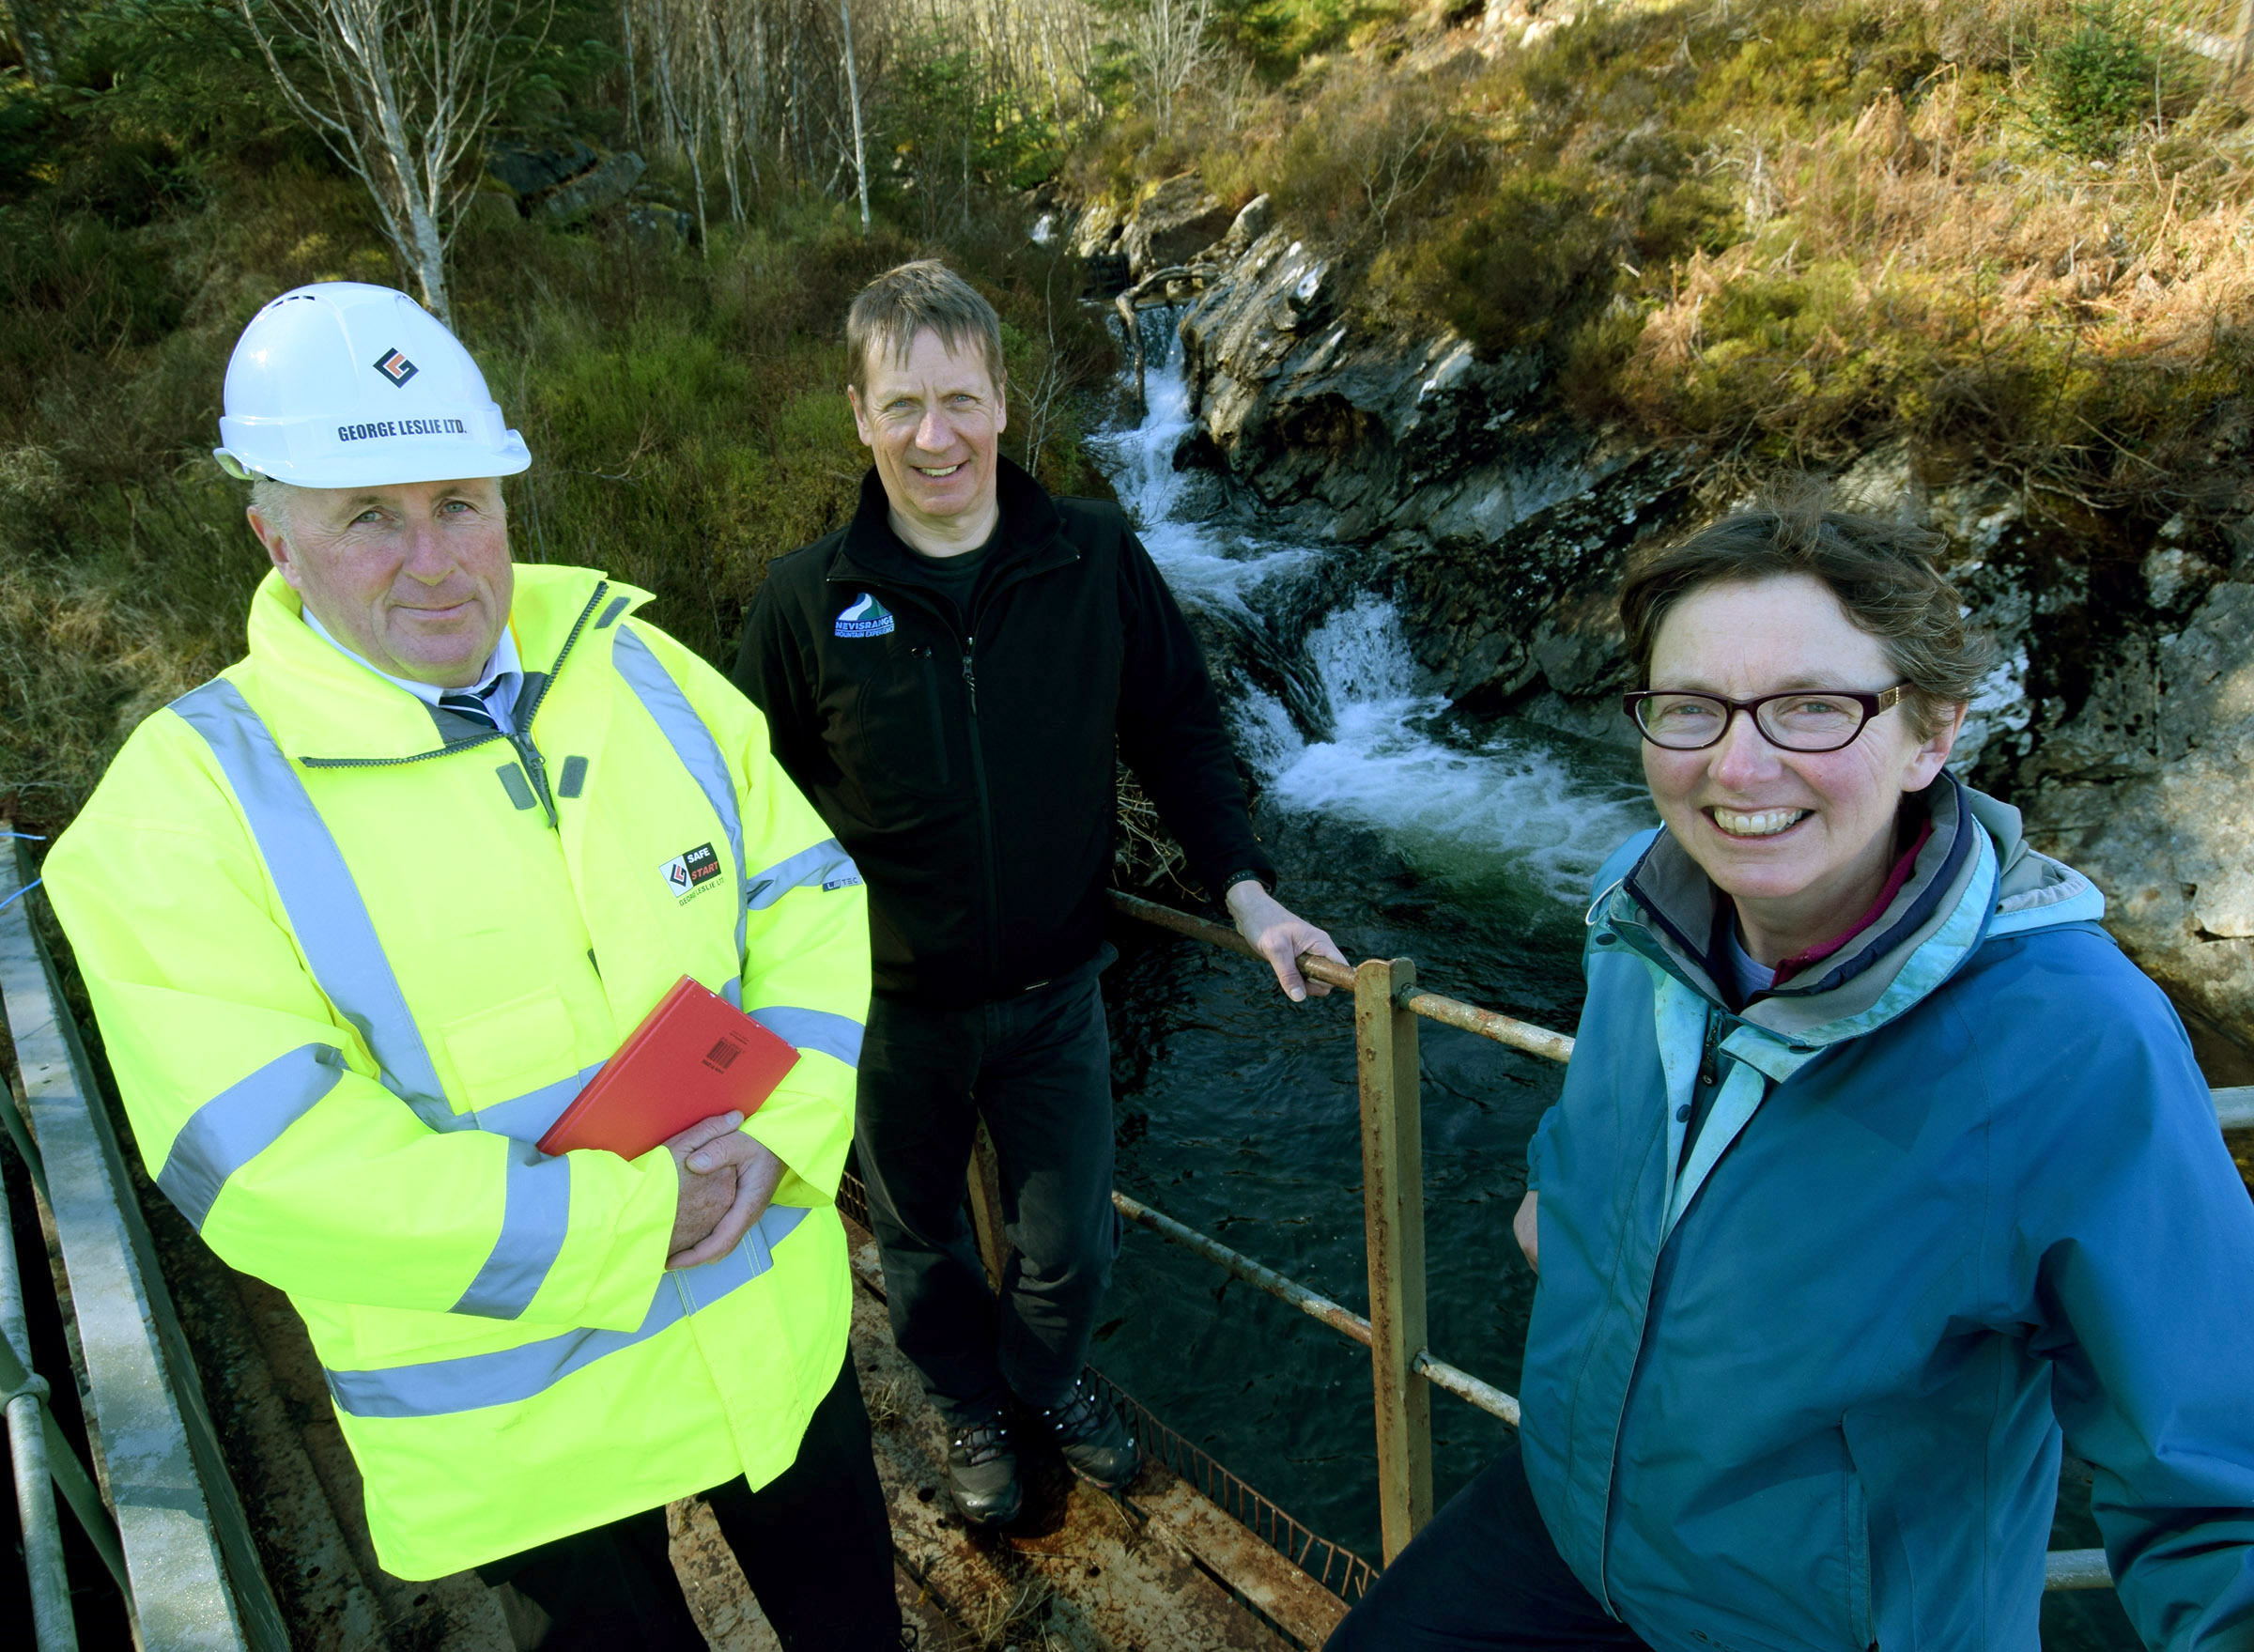 Charlie Gallagher (left), with Peter MacFarlane and Marian Austin at the burn which which will provide hydro power